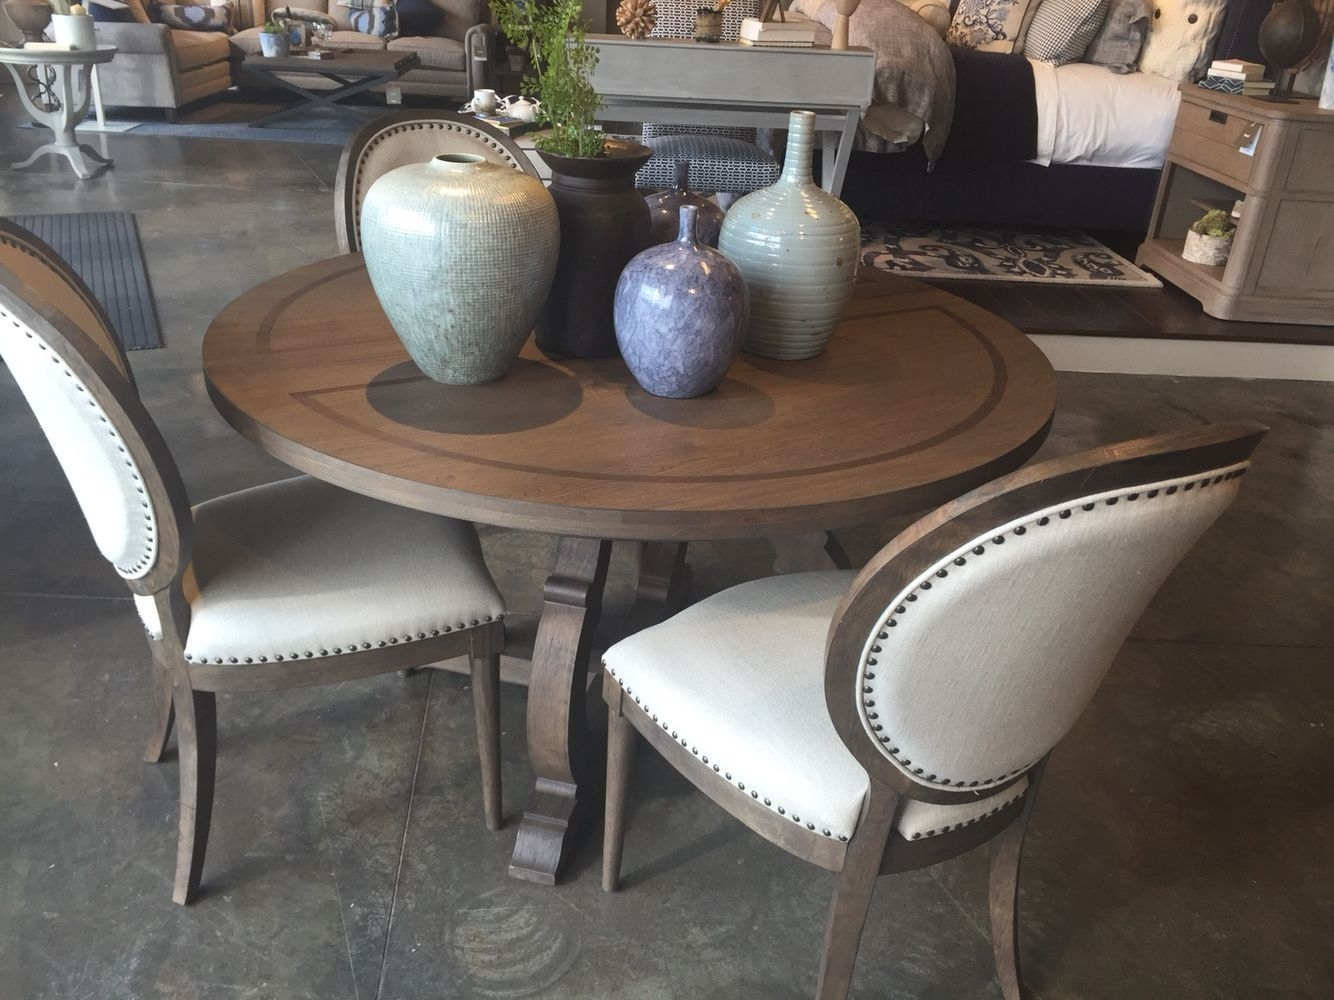 Bassett – Artisanal Round Table, Chadwick Brown | Hopkinton Dining For Current Artisanal Dining Tables (Image 7 of 20)